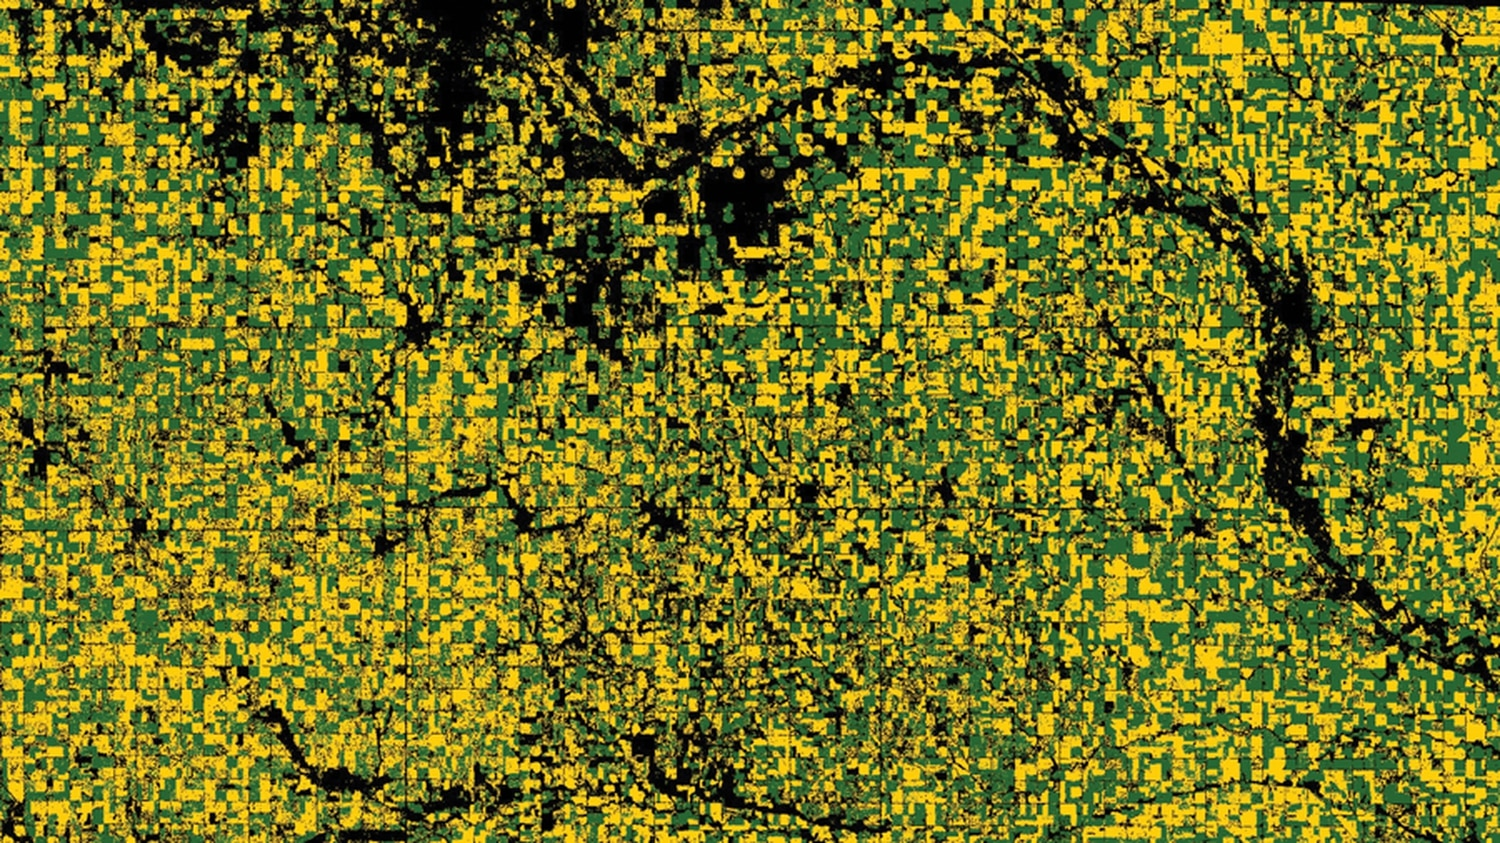 A satellite image from Descartes' field segmentation program shows two different crop types.